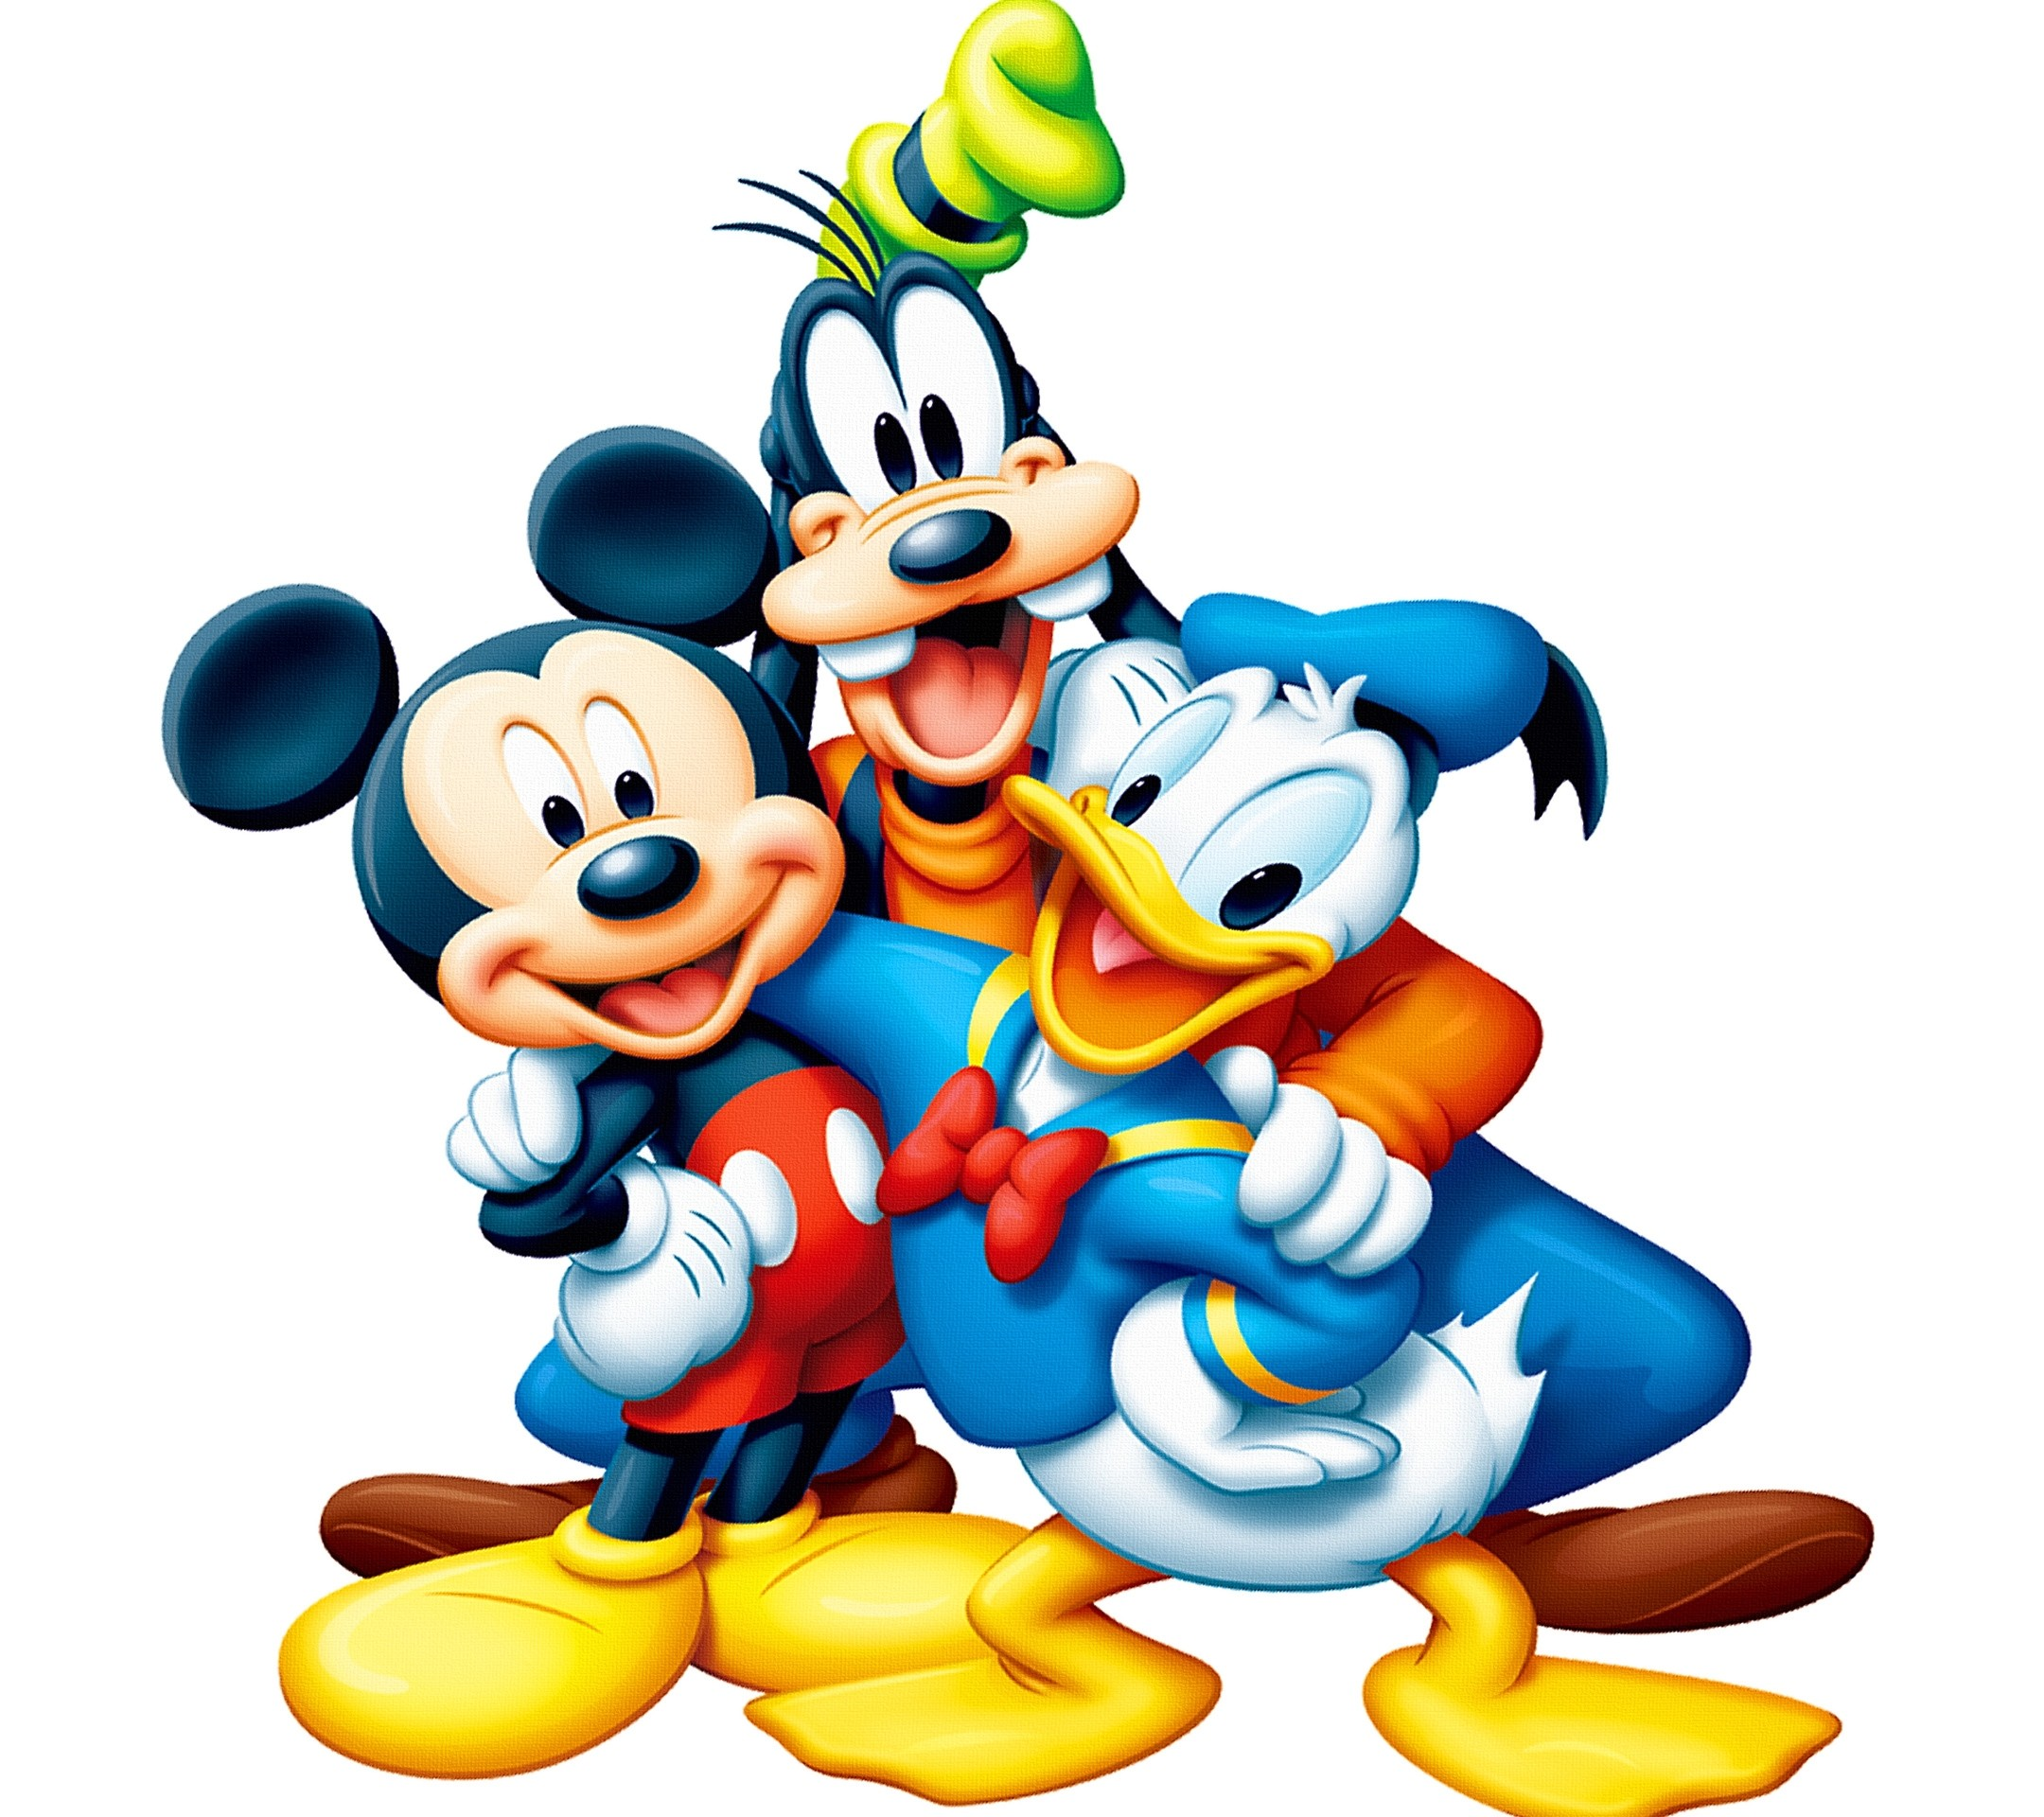 Polka Dots Wallpaper For Iphone Mickey Mouse Background 183 ① Download Free Wallpapers For